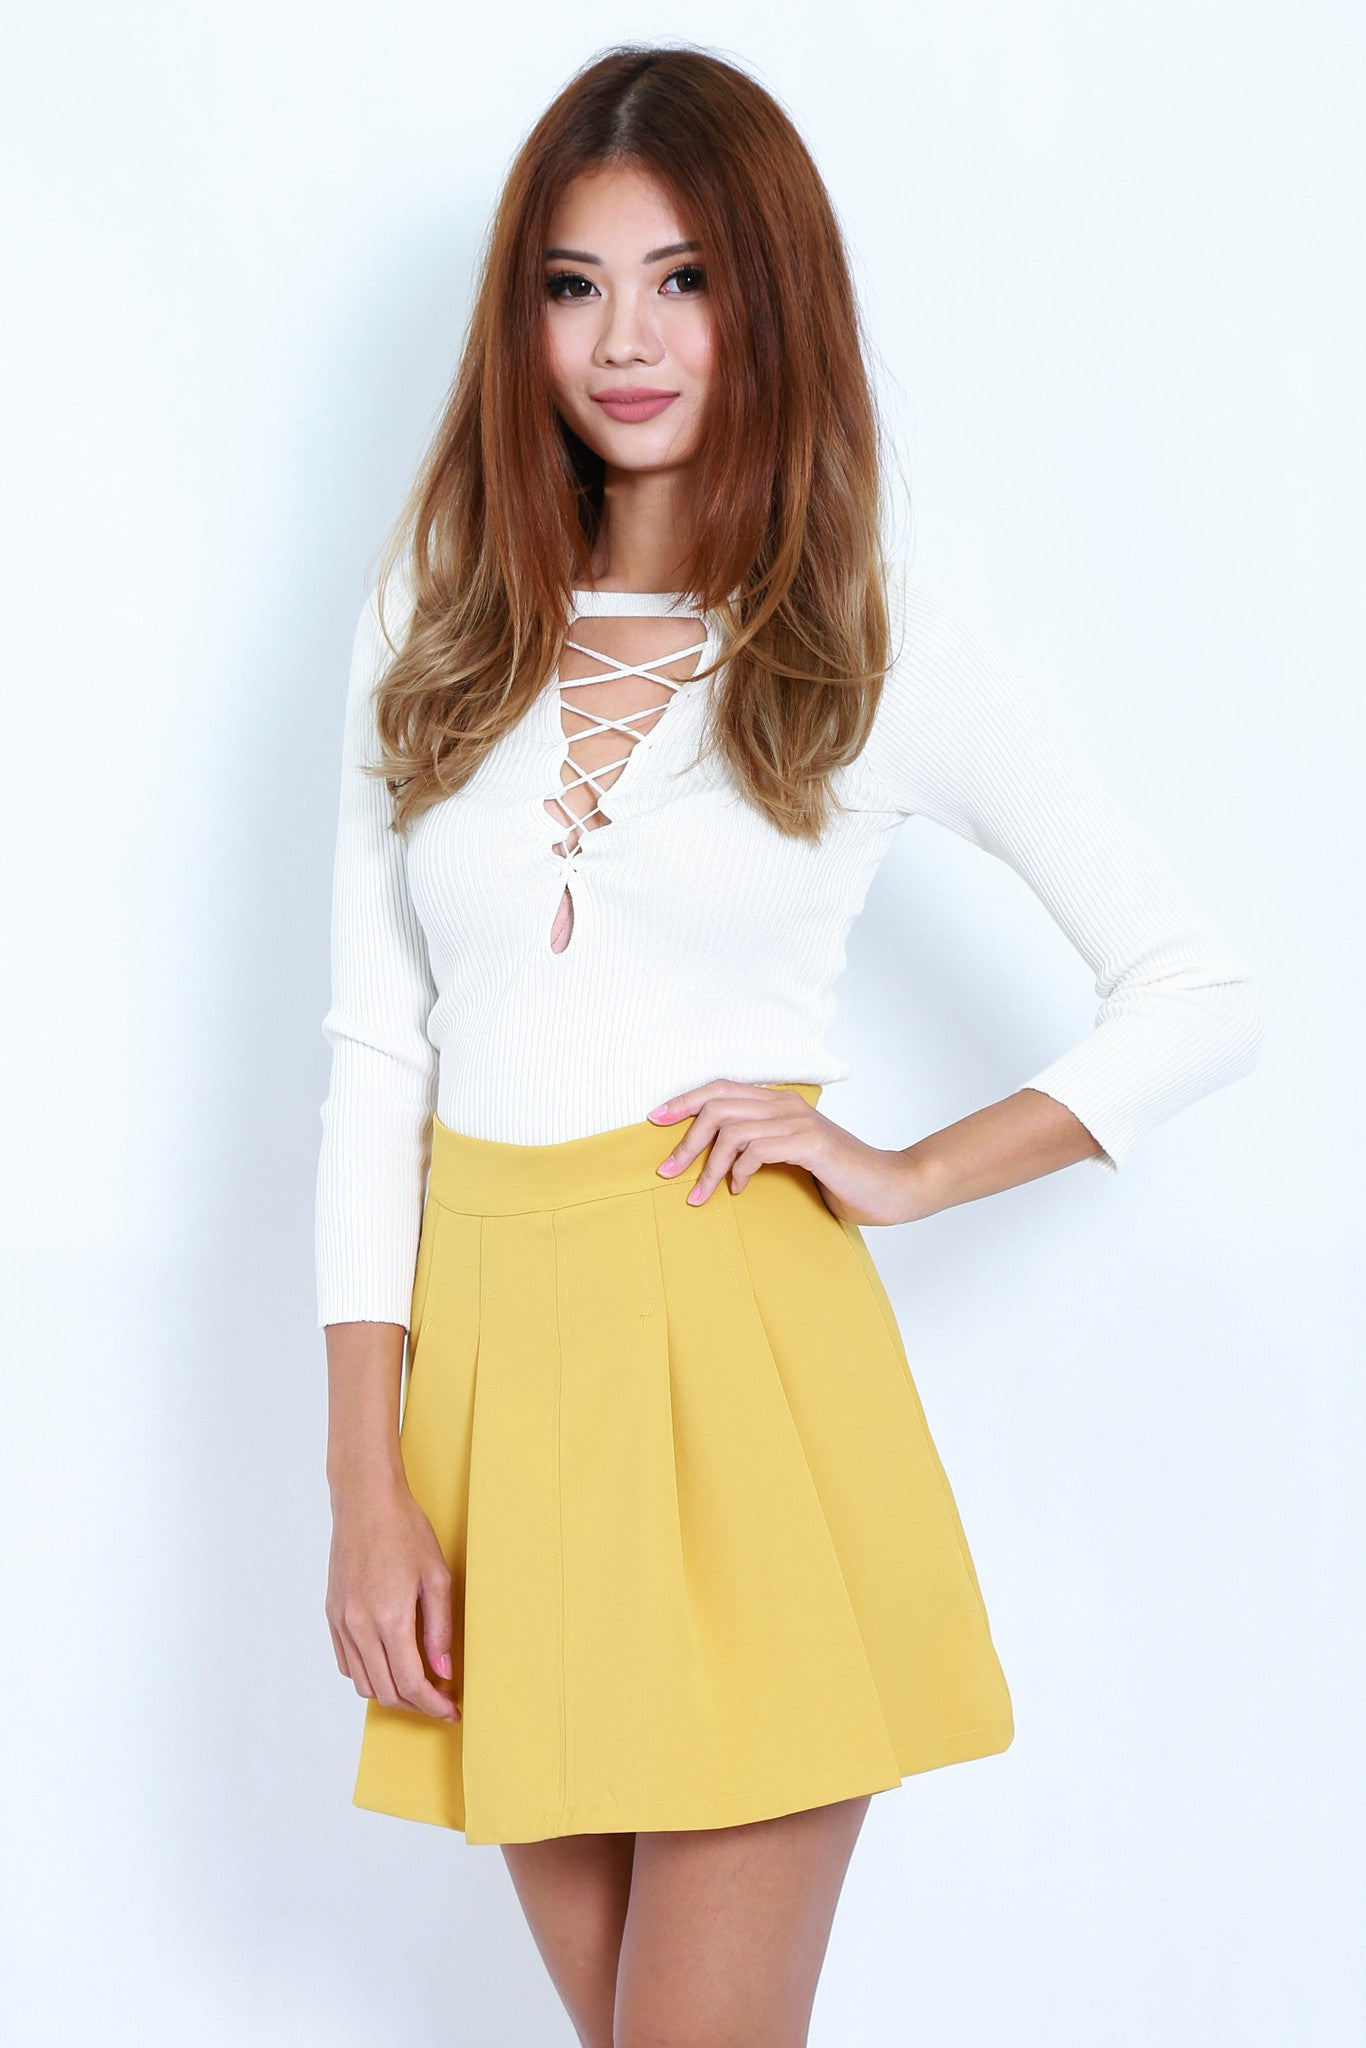 TWO WAY LACED UP KNIT TOP IN WHITE